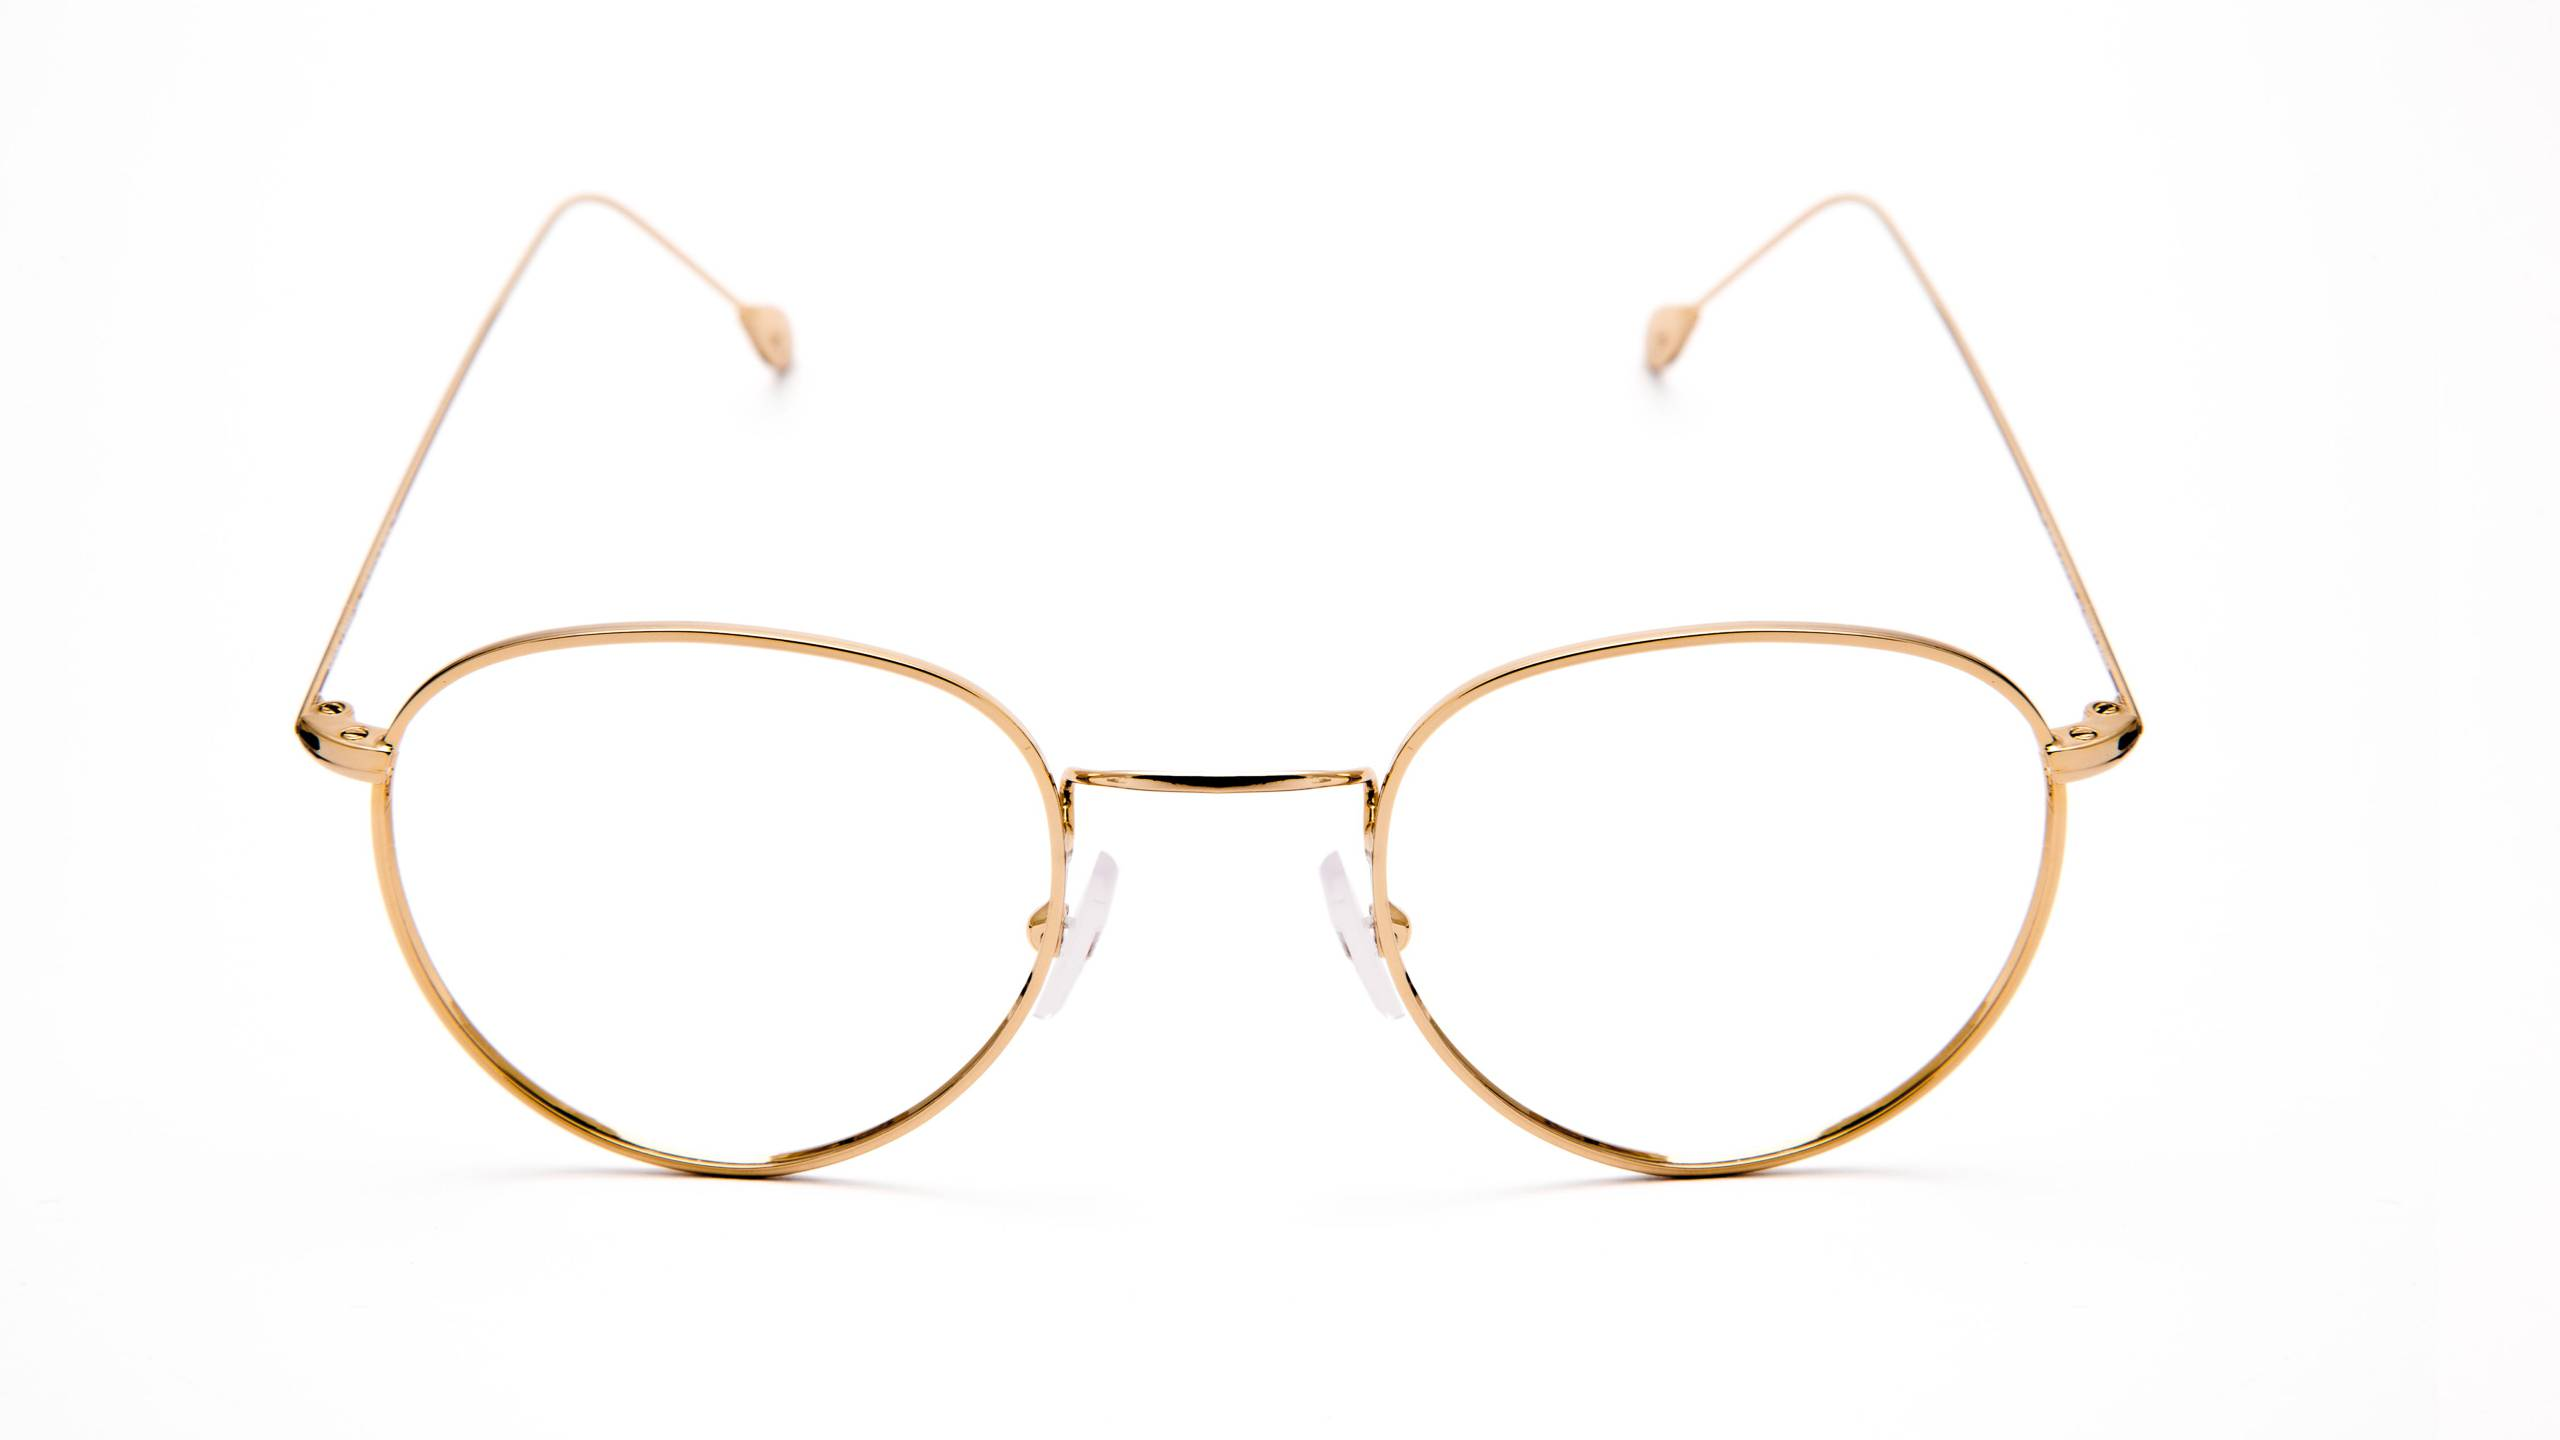 eyeglasses-Nathan-Kaltermann-made-in-Italy-PALMAROLA-ORO-UNISEX-VISTA1